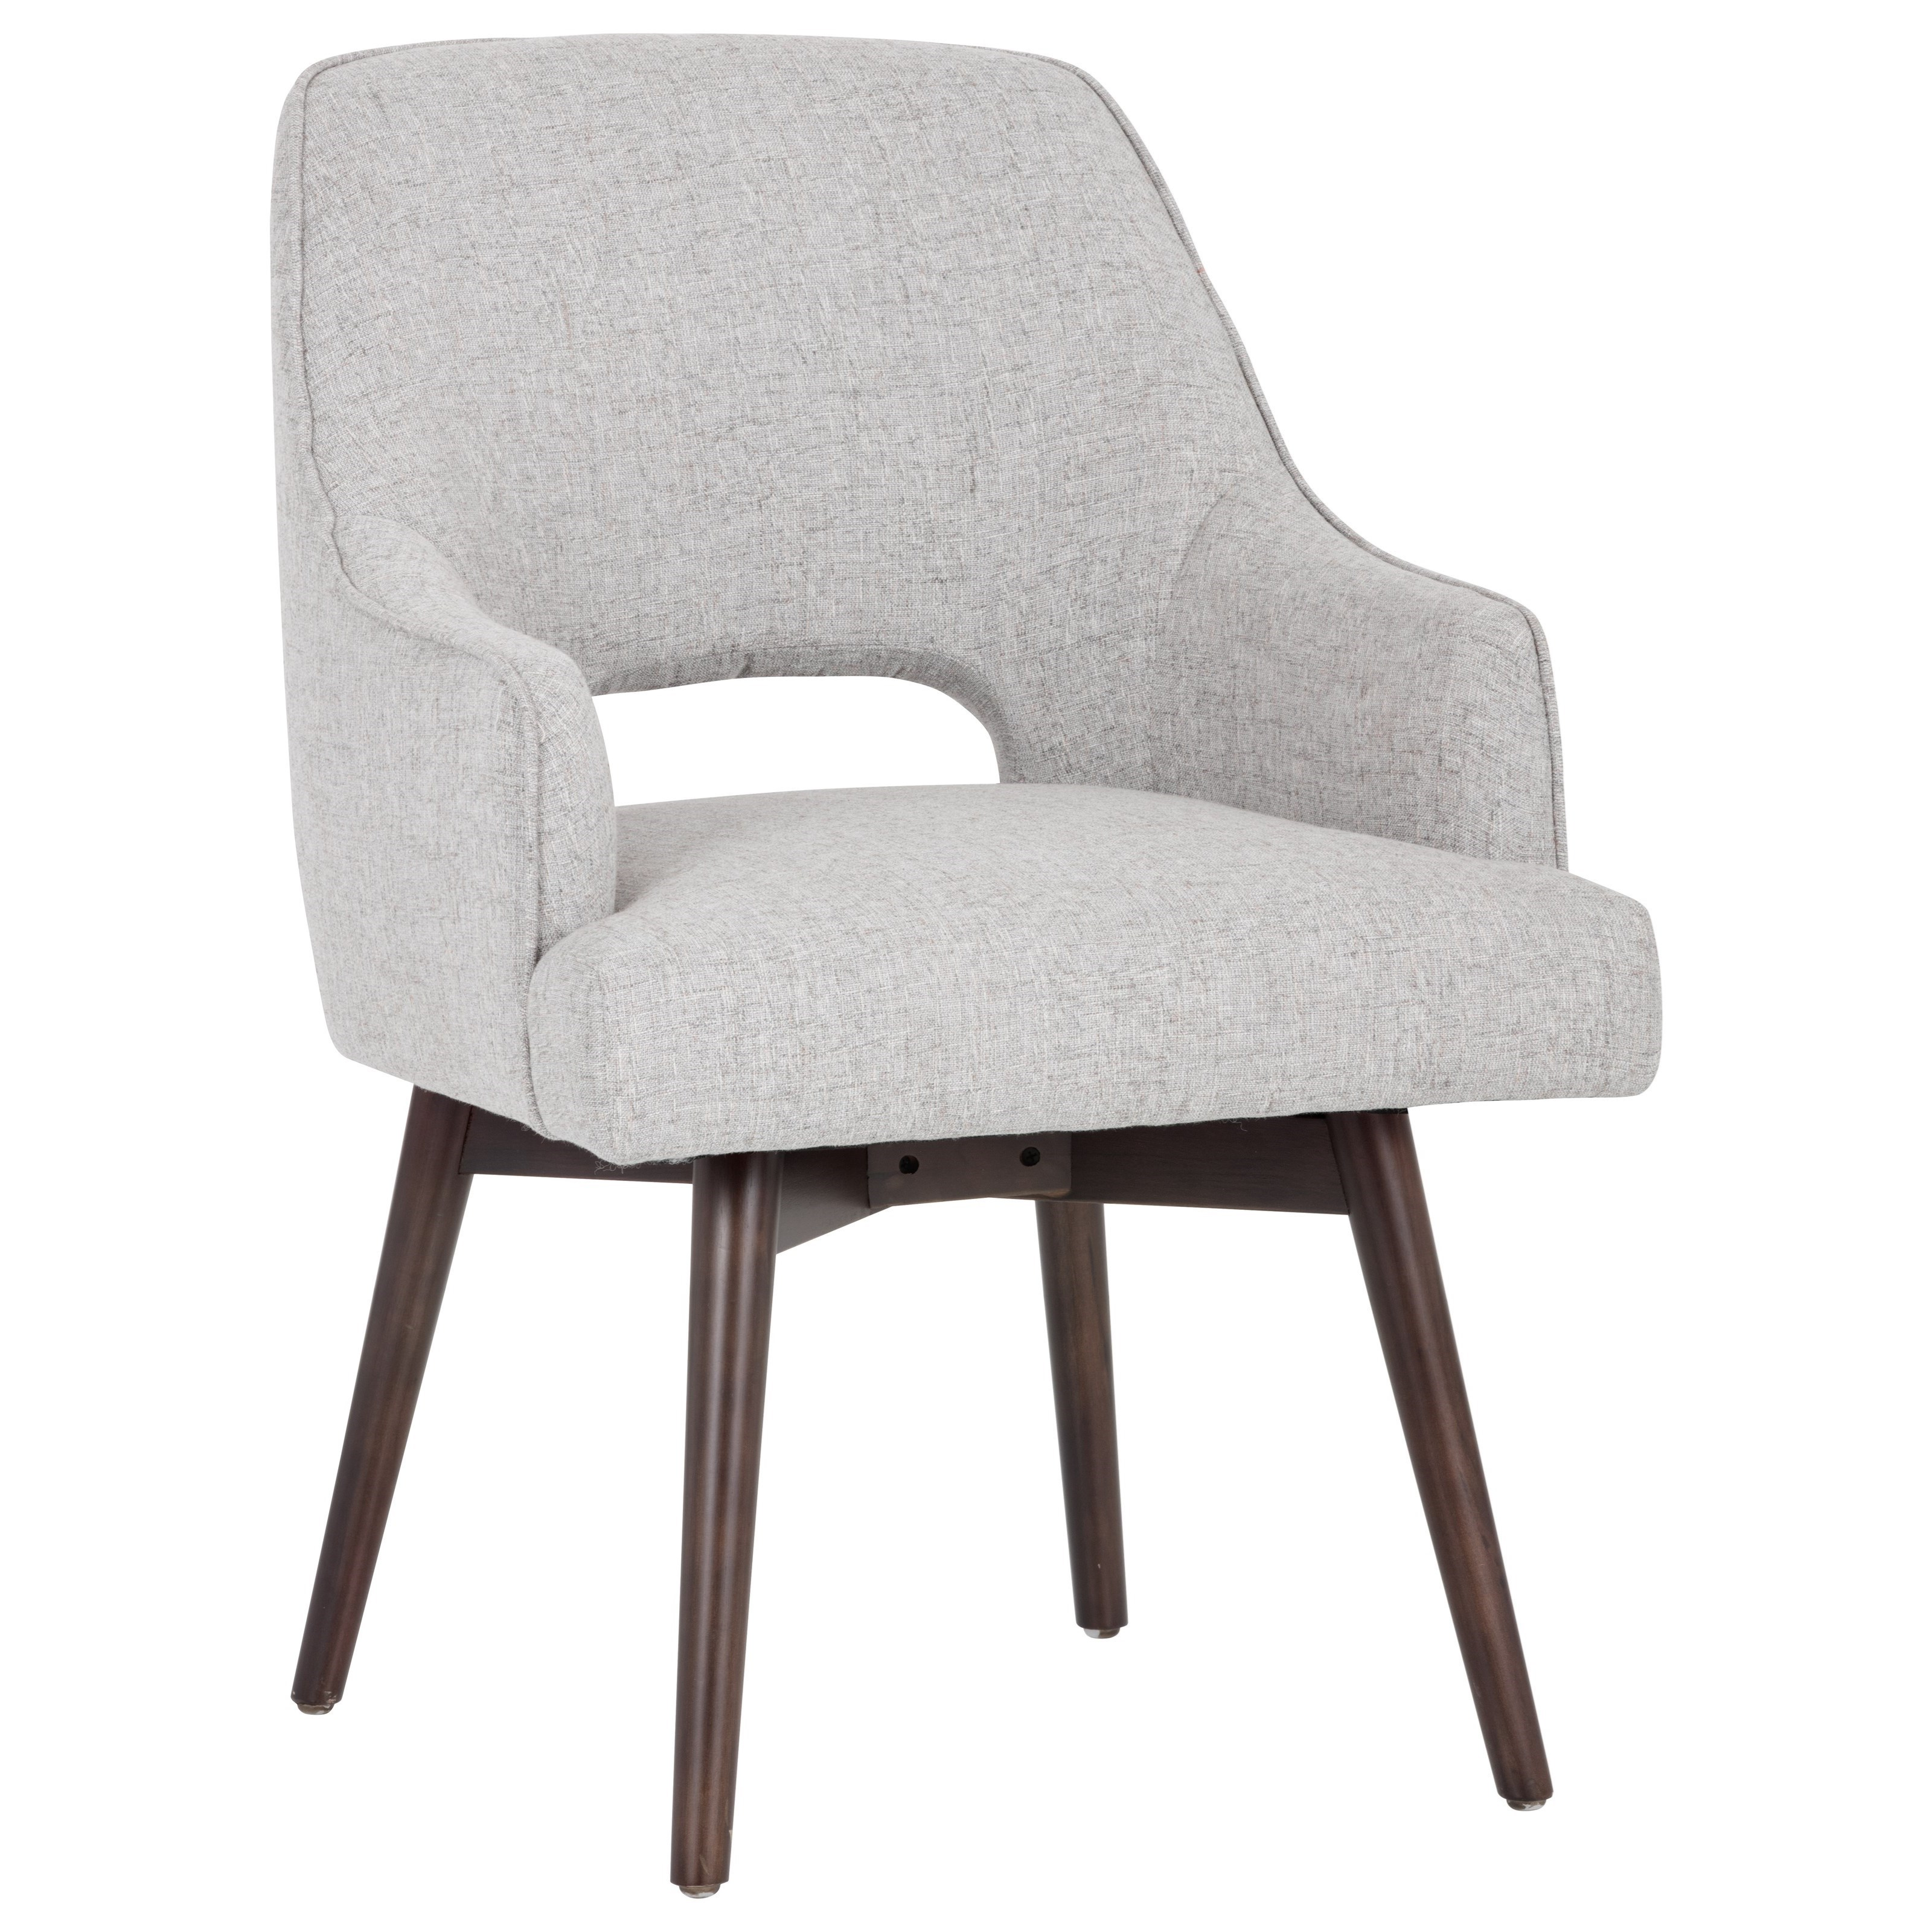 5West Newton Swivel Armchair by Sunpan Imports at Reid's Furniture